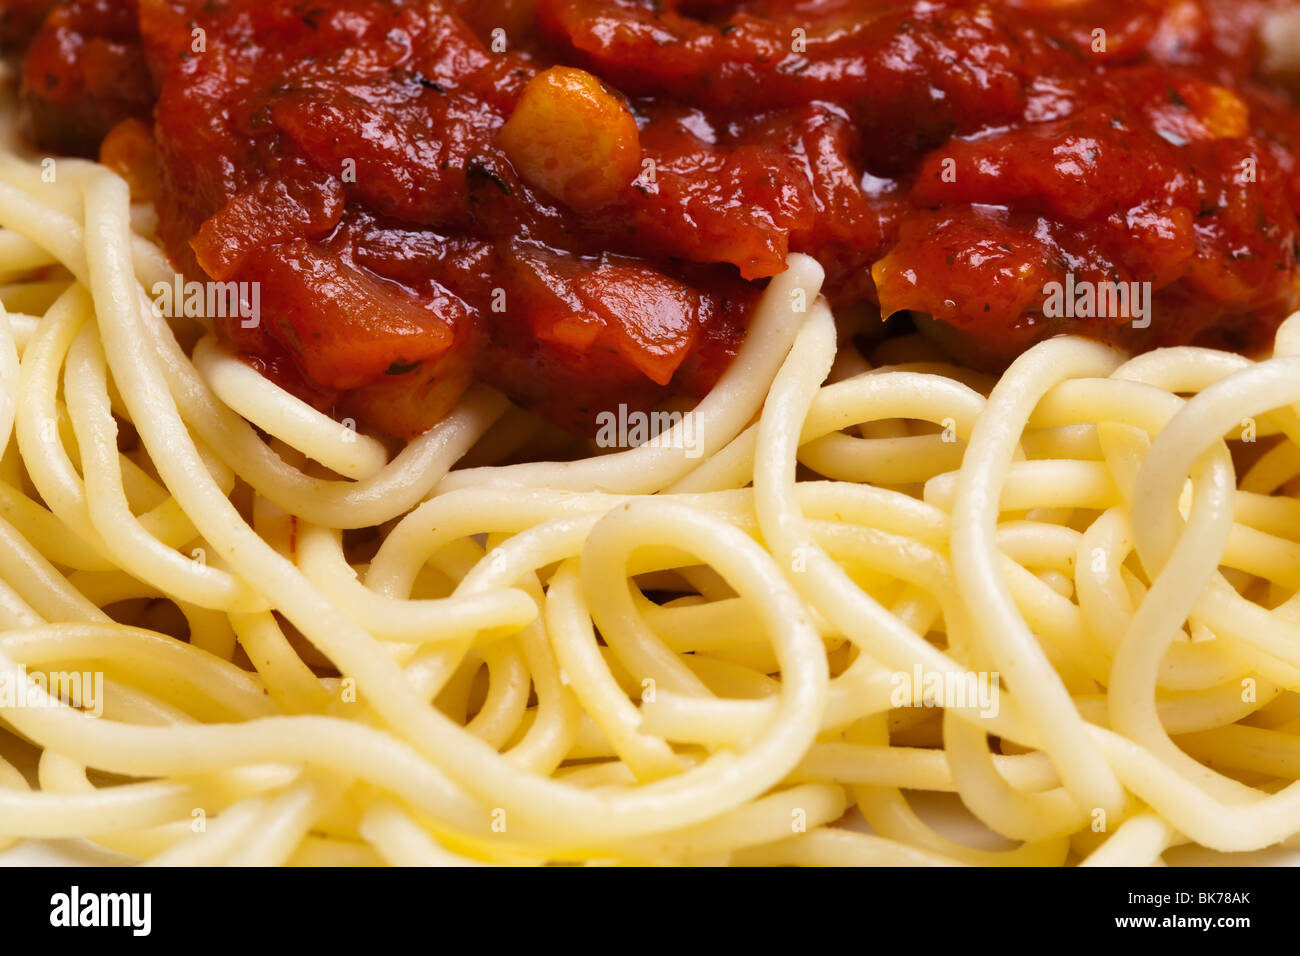 Spaghettis à la bolognaise, des plats italiens traditionnels Photo Stock